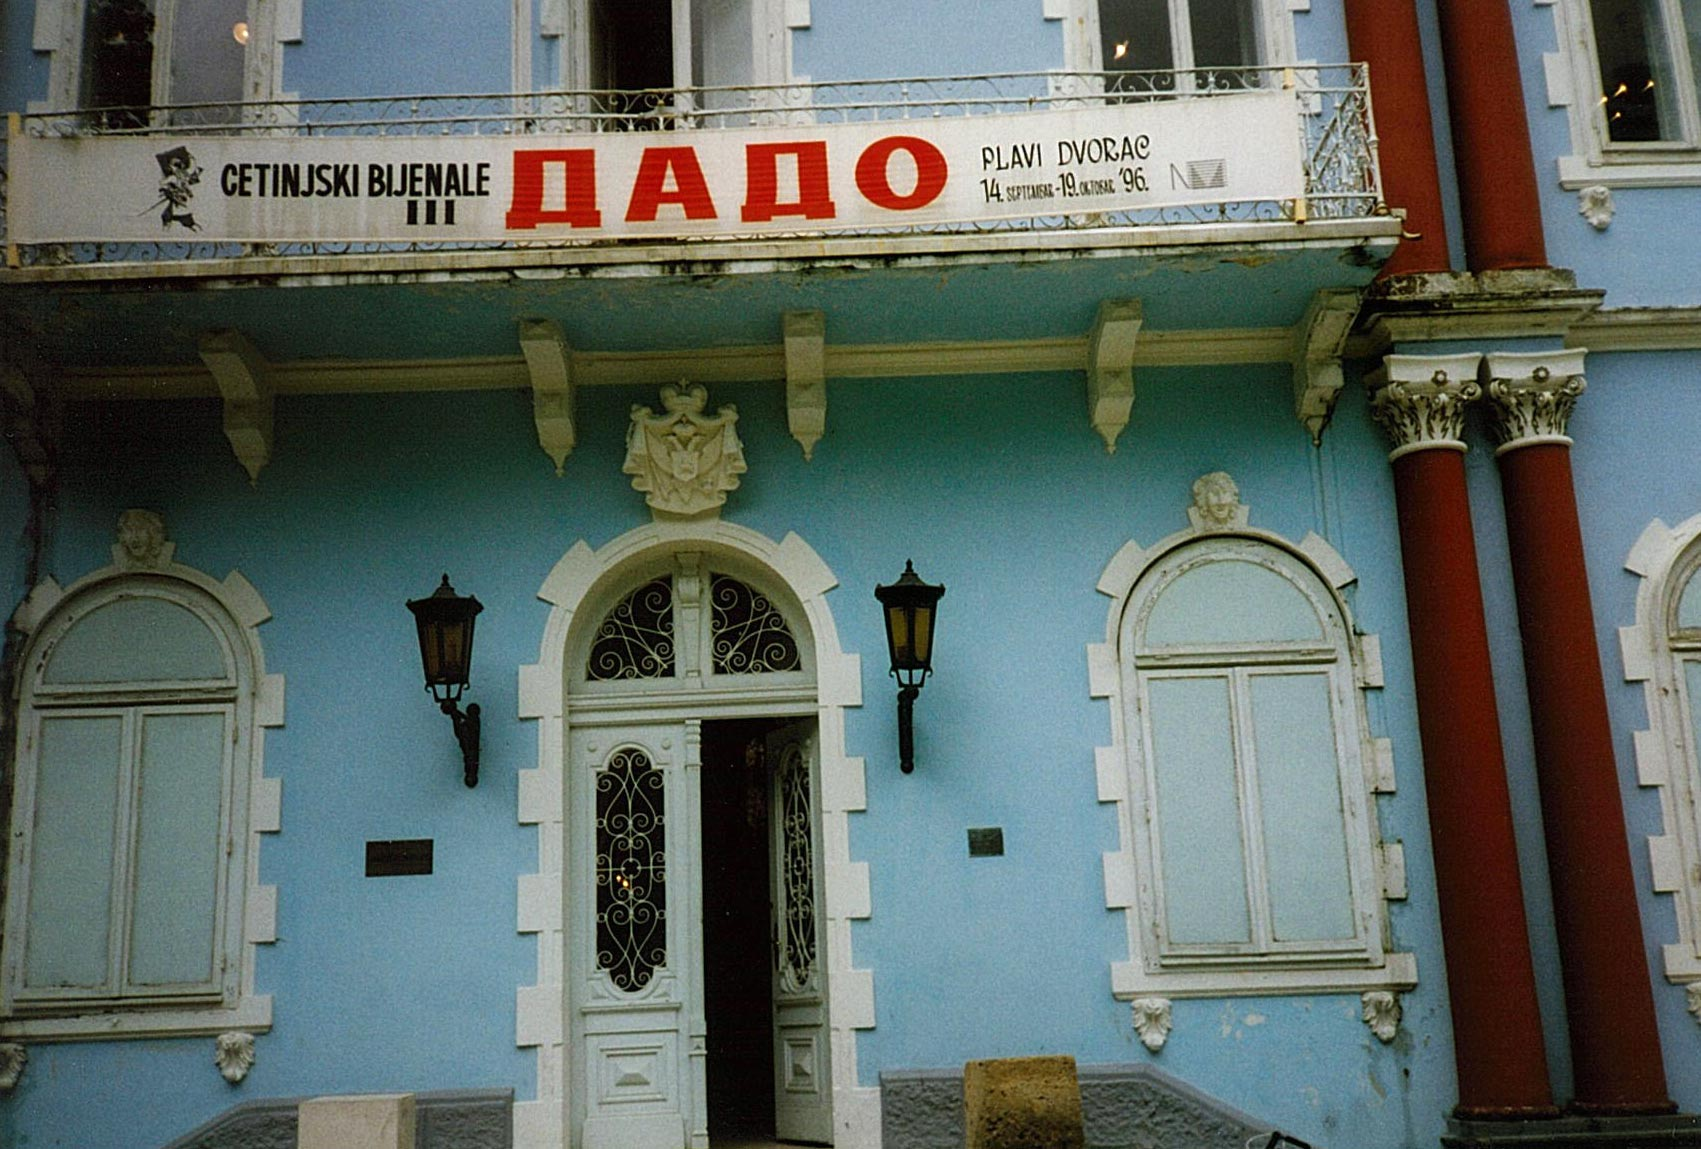 Dado's exhibition at the Blue Palace in Cetinje in 1996